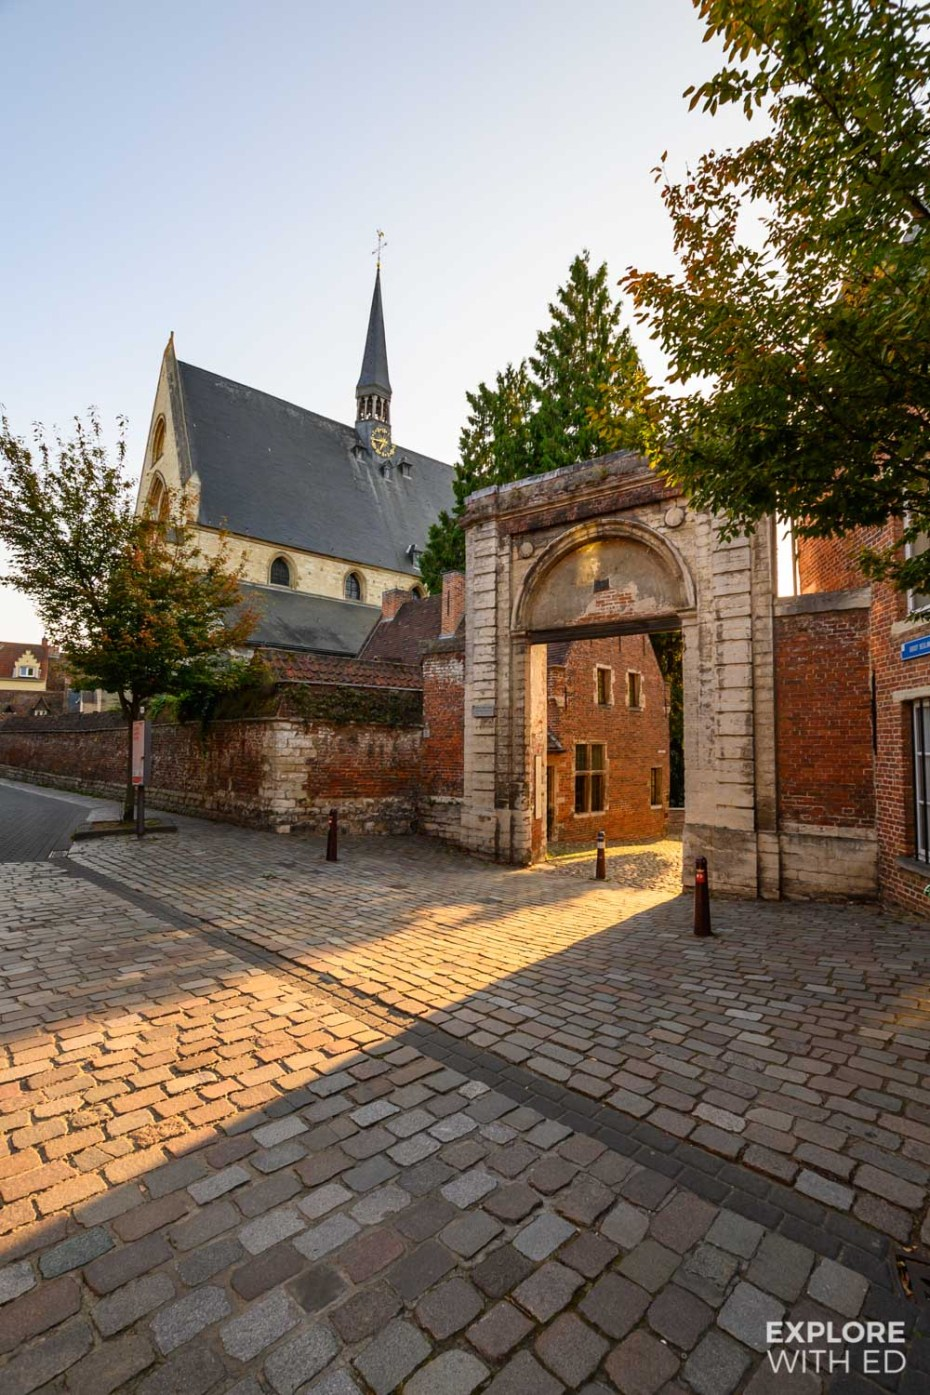 Entrance to The Great Beguinage in Leuven, Belgium